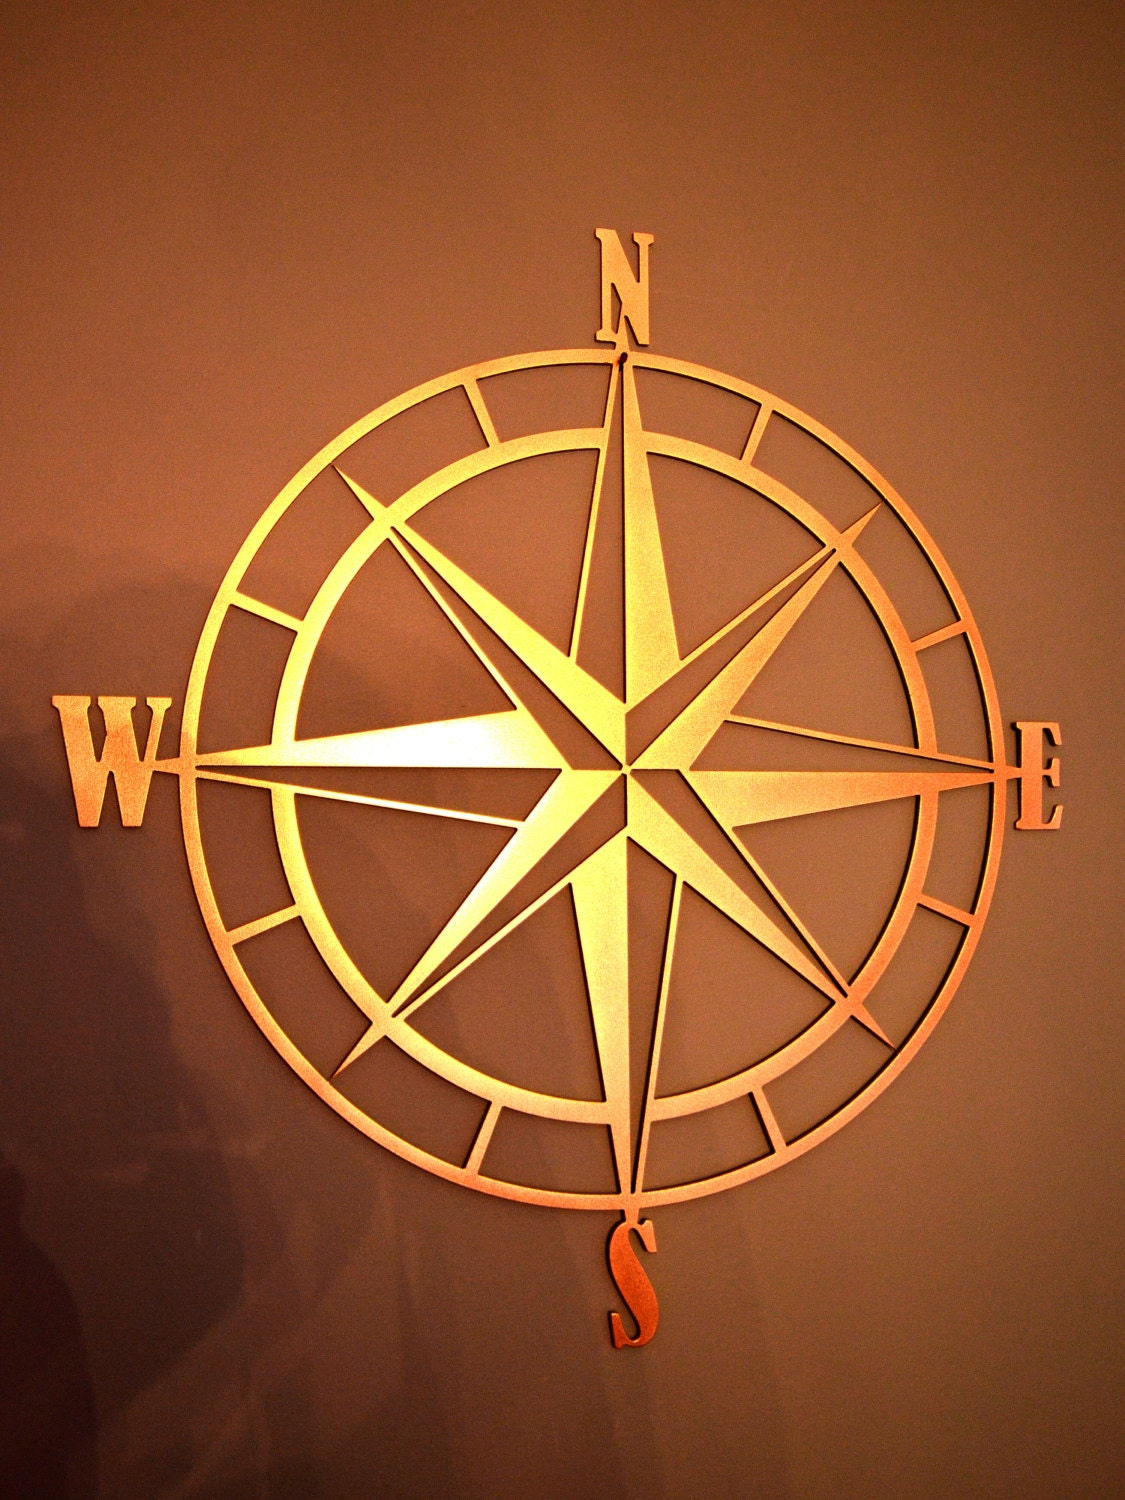 Nautical Compass Wall Decor : Nautical compass rose metal wall art by custommetalworx on